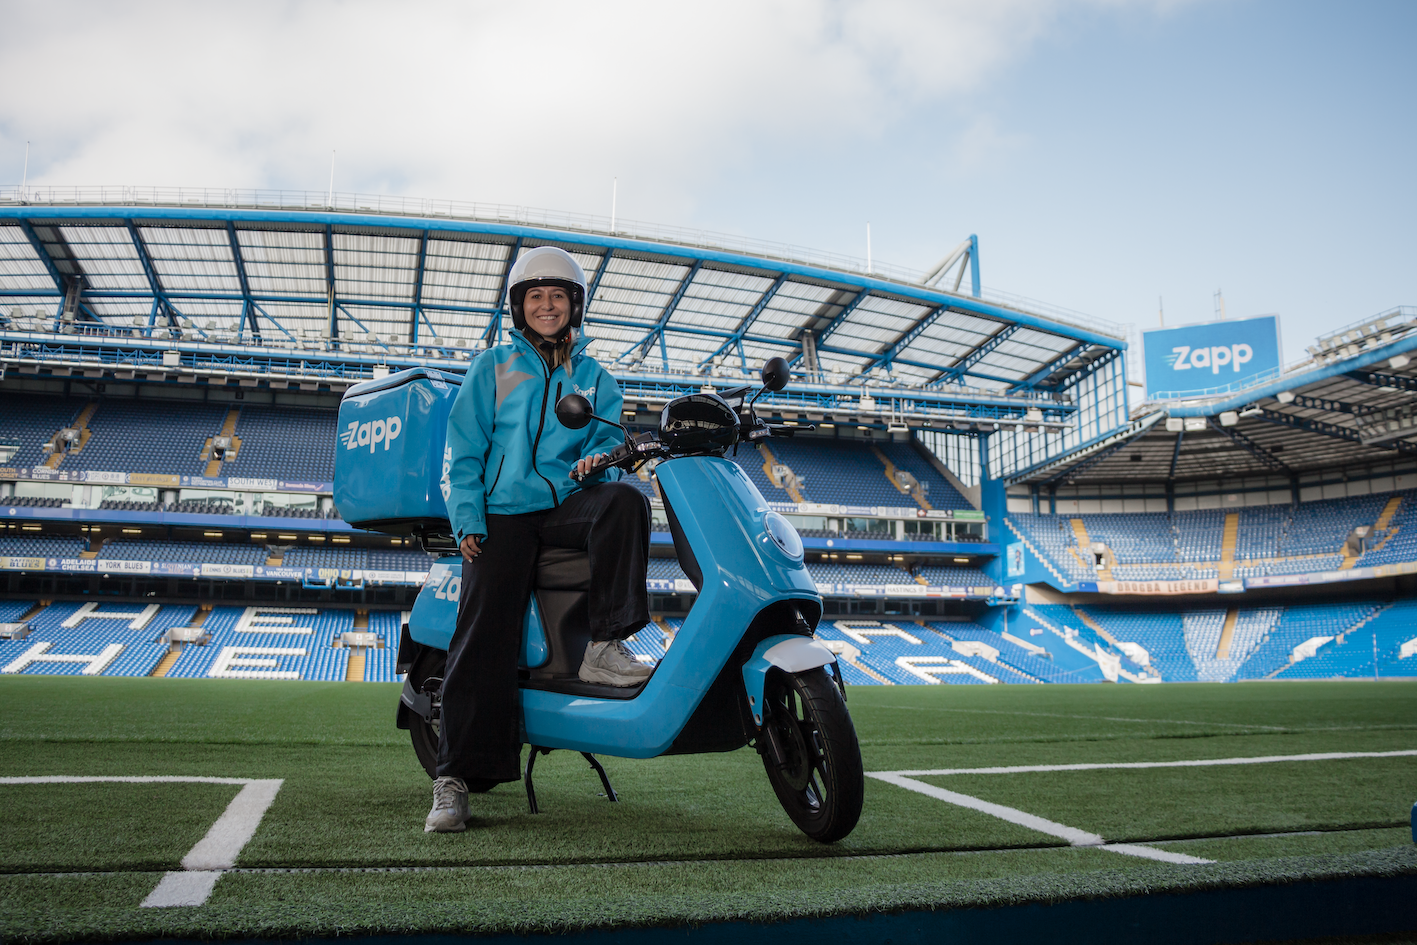 Zapp delivery driver sits on moped in Stamford Bridge